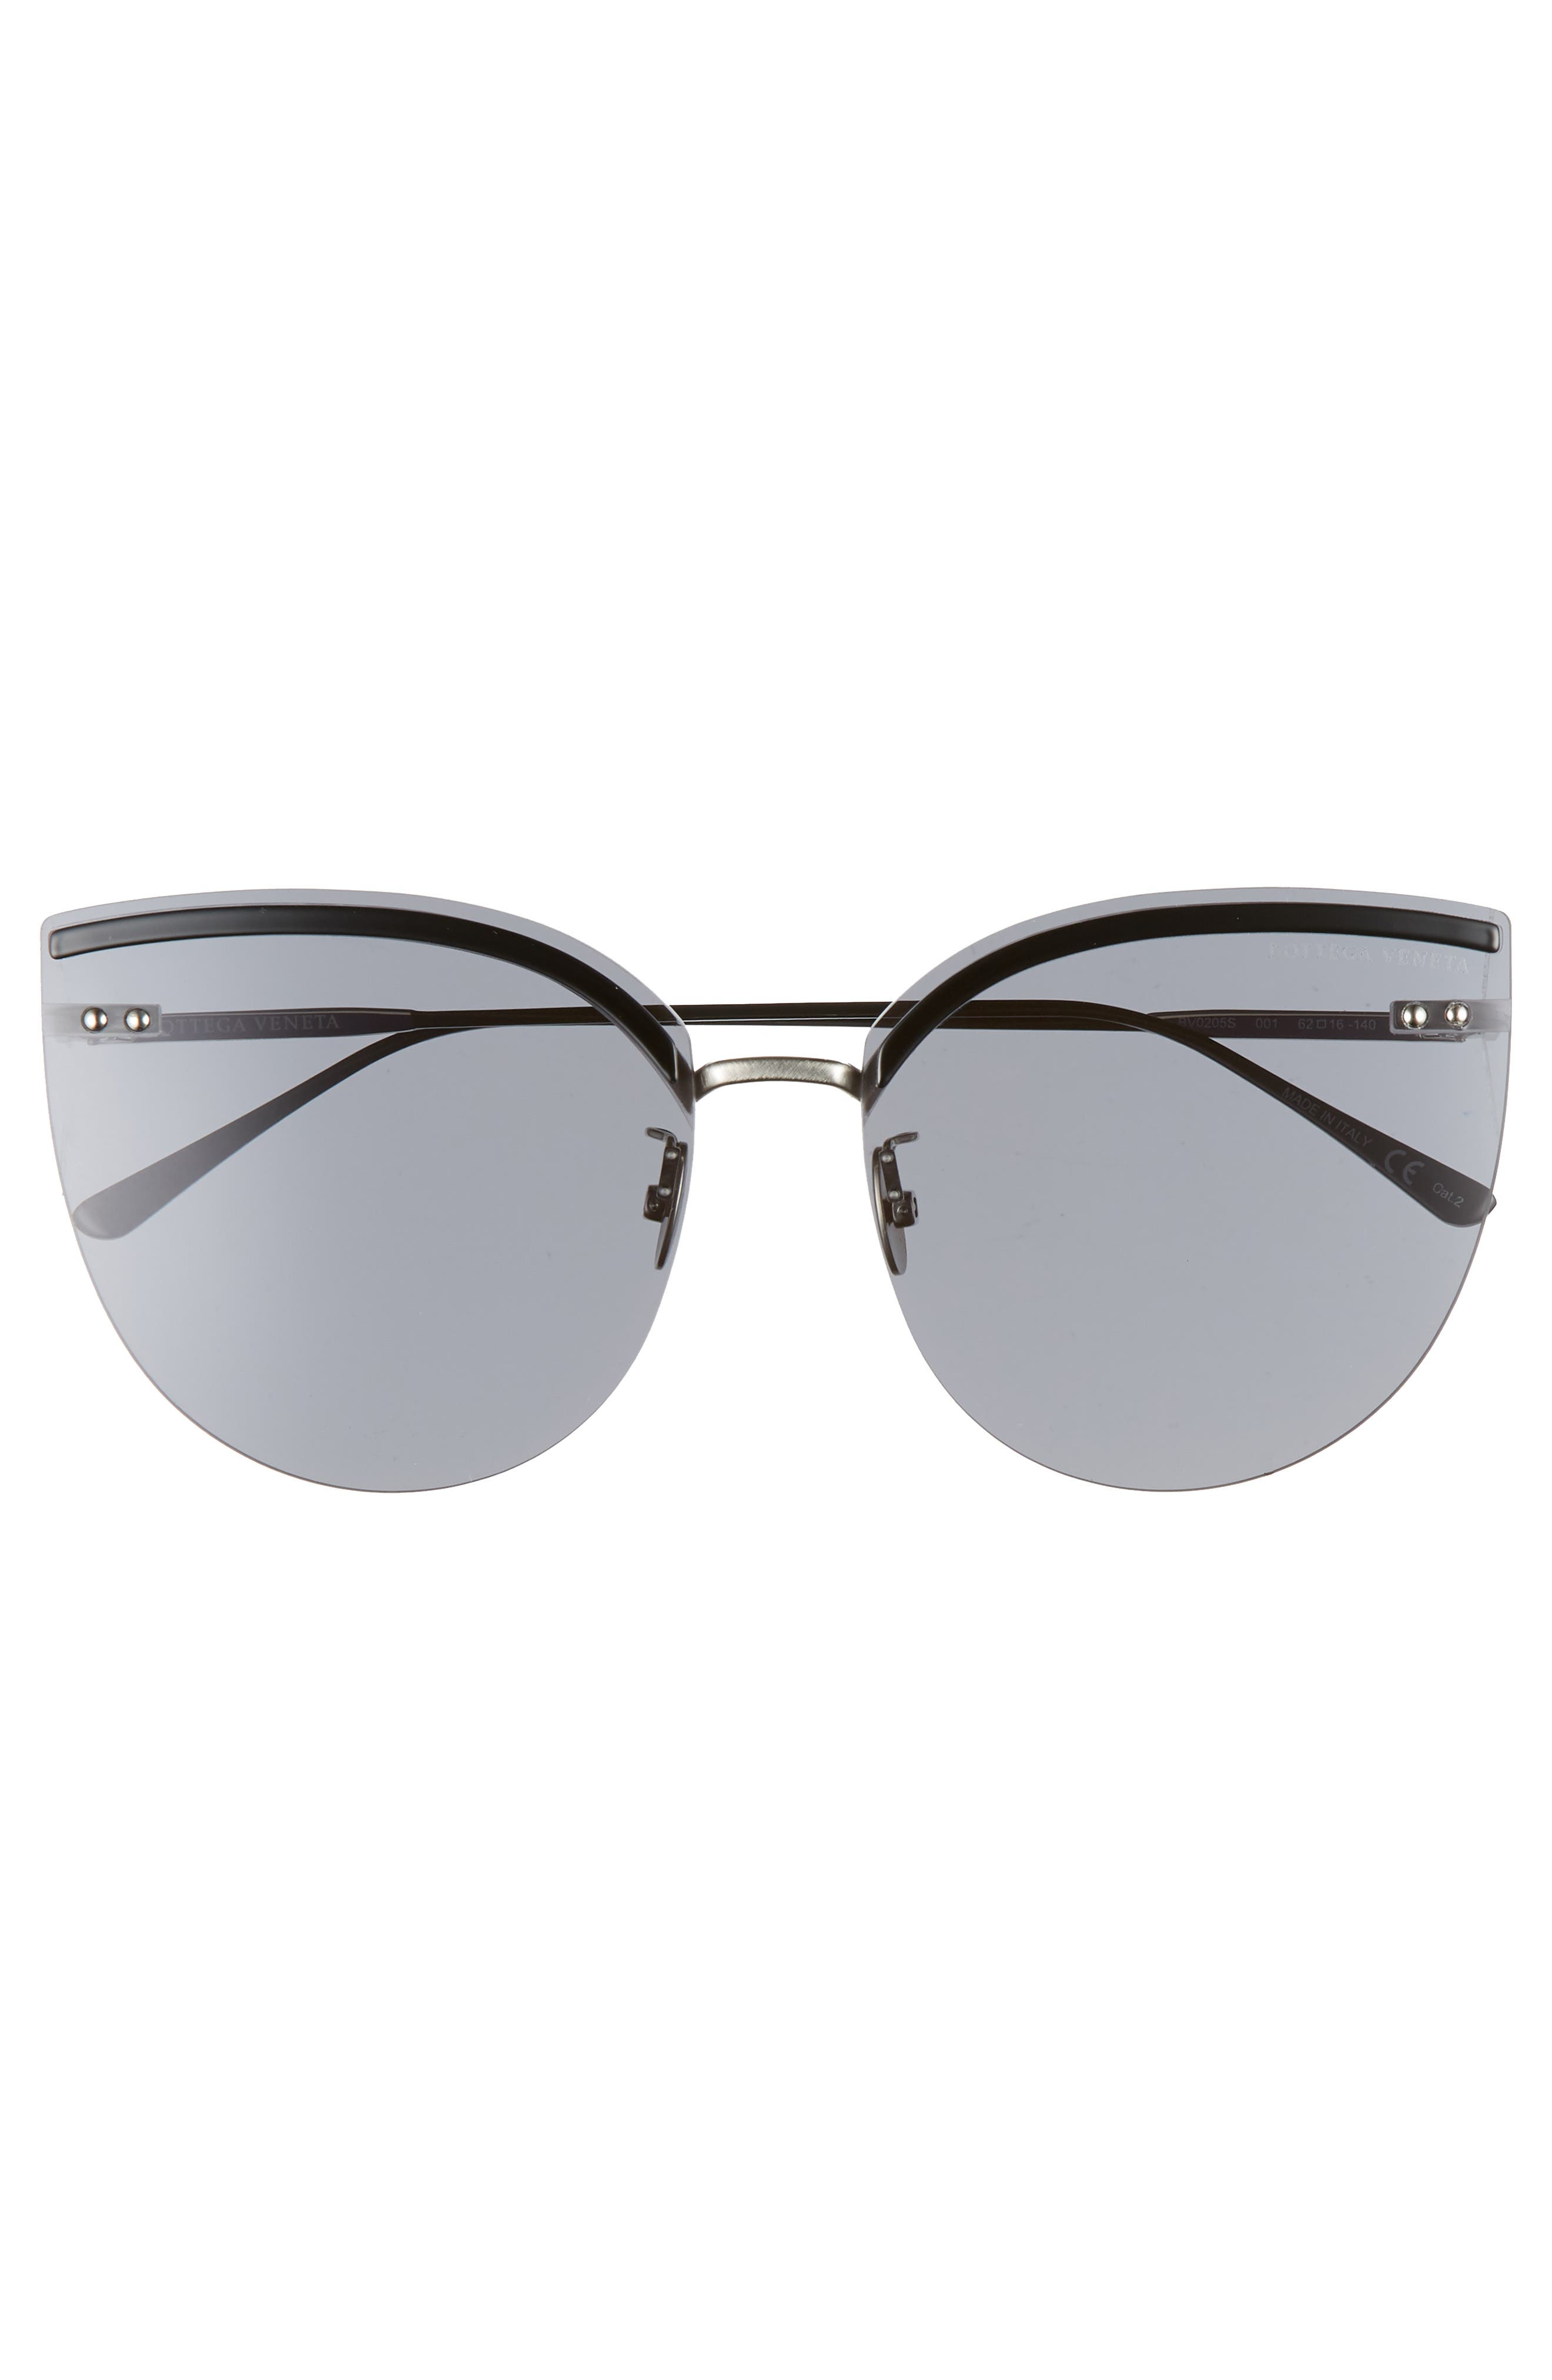 62mm Oversize Rimless Cat Eye Sunglasses,                             Alternate thumbnail 3, color,                             SILVER/ BLACK